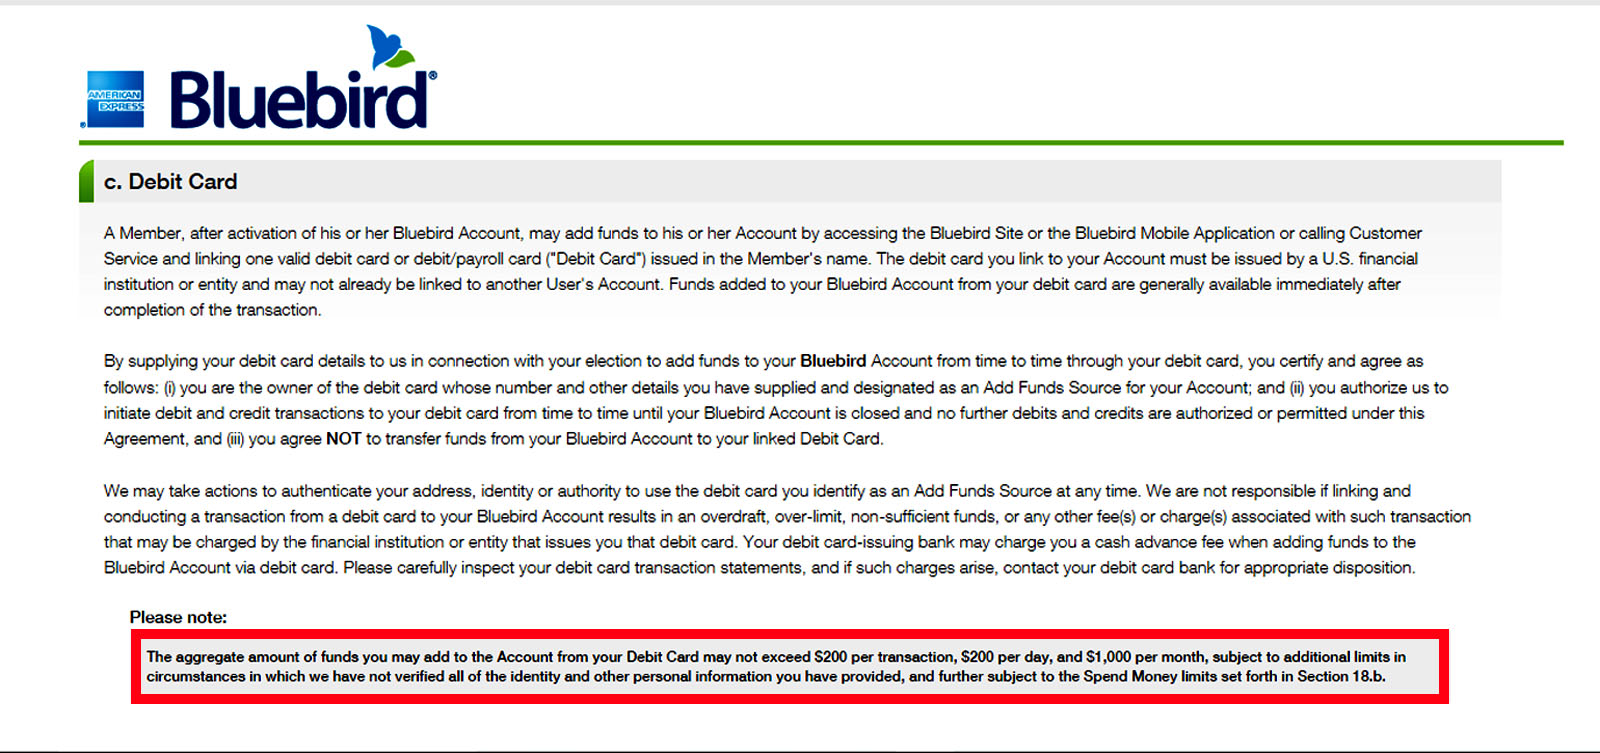 American express changes terms regarding debit card loads to so if you still have a bluebird account that is activeyou will probably be operating under much stricter conditions than you previously were accustomed platinumwayz